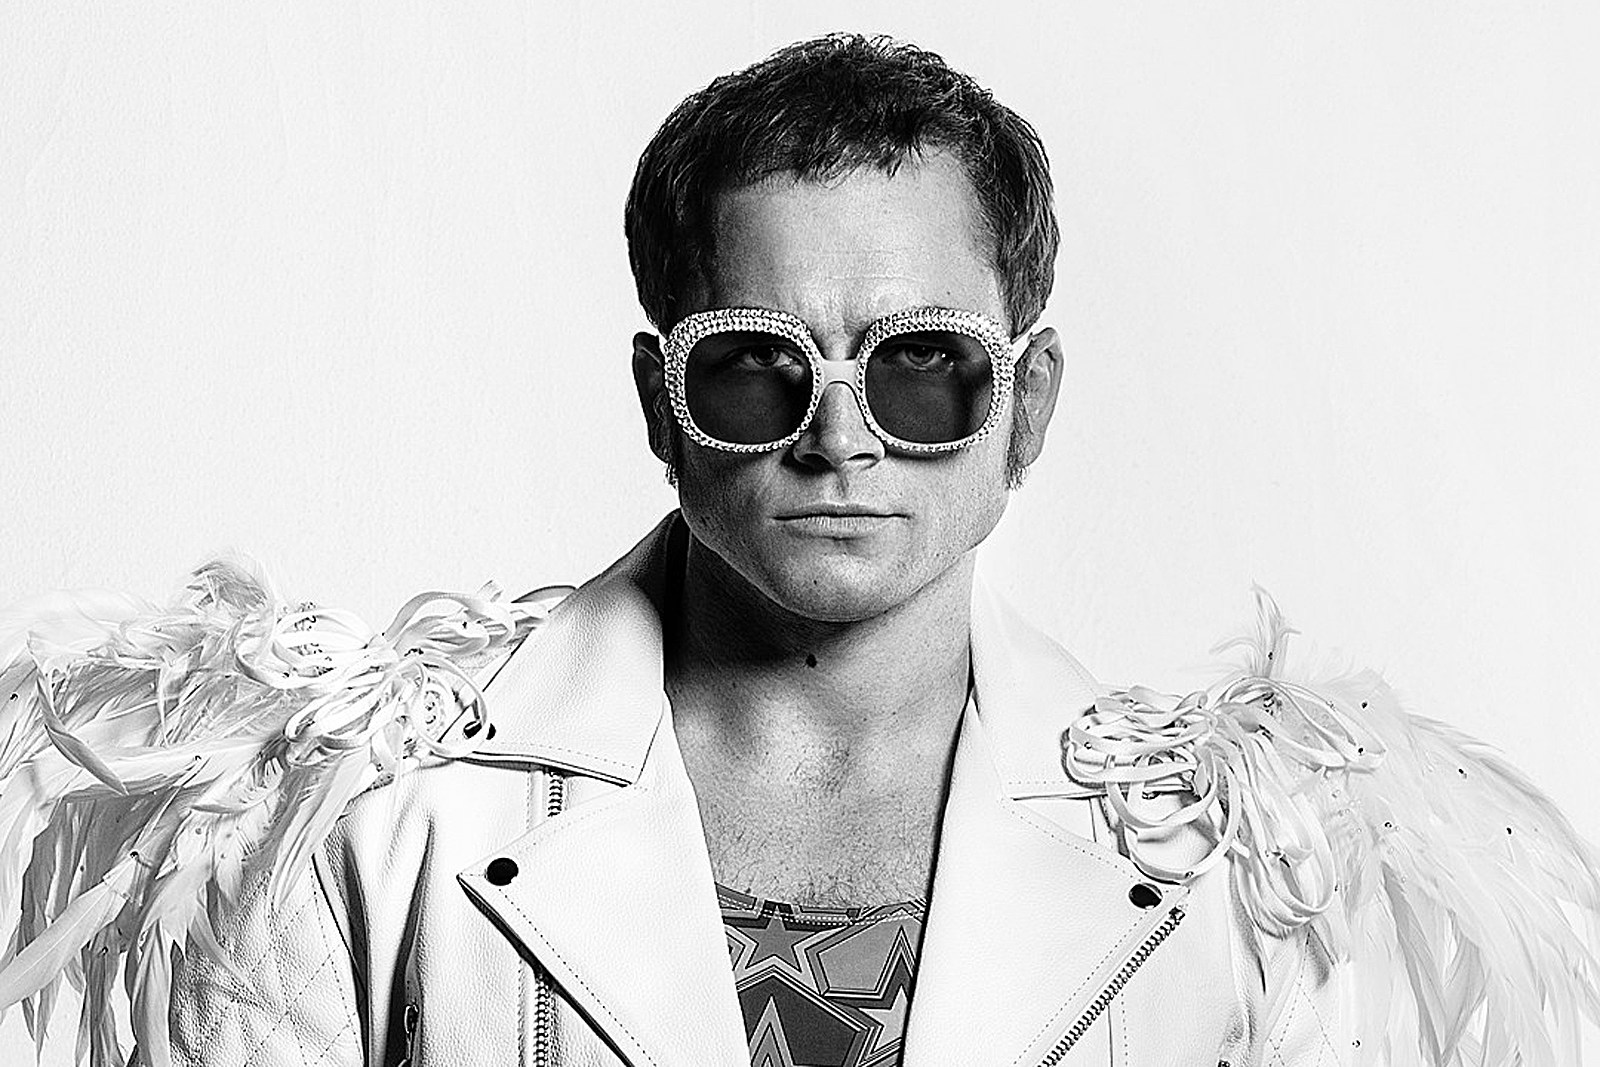 Sex, Drug Scene Expected to Earn 'Rocketman' an R Rating